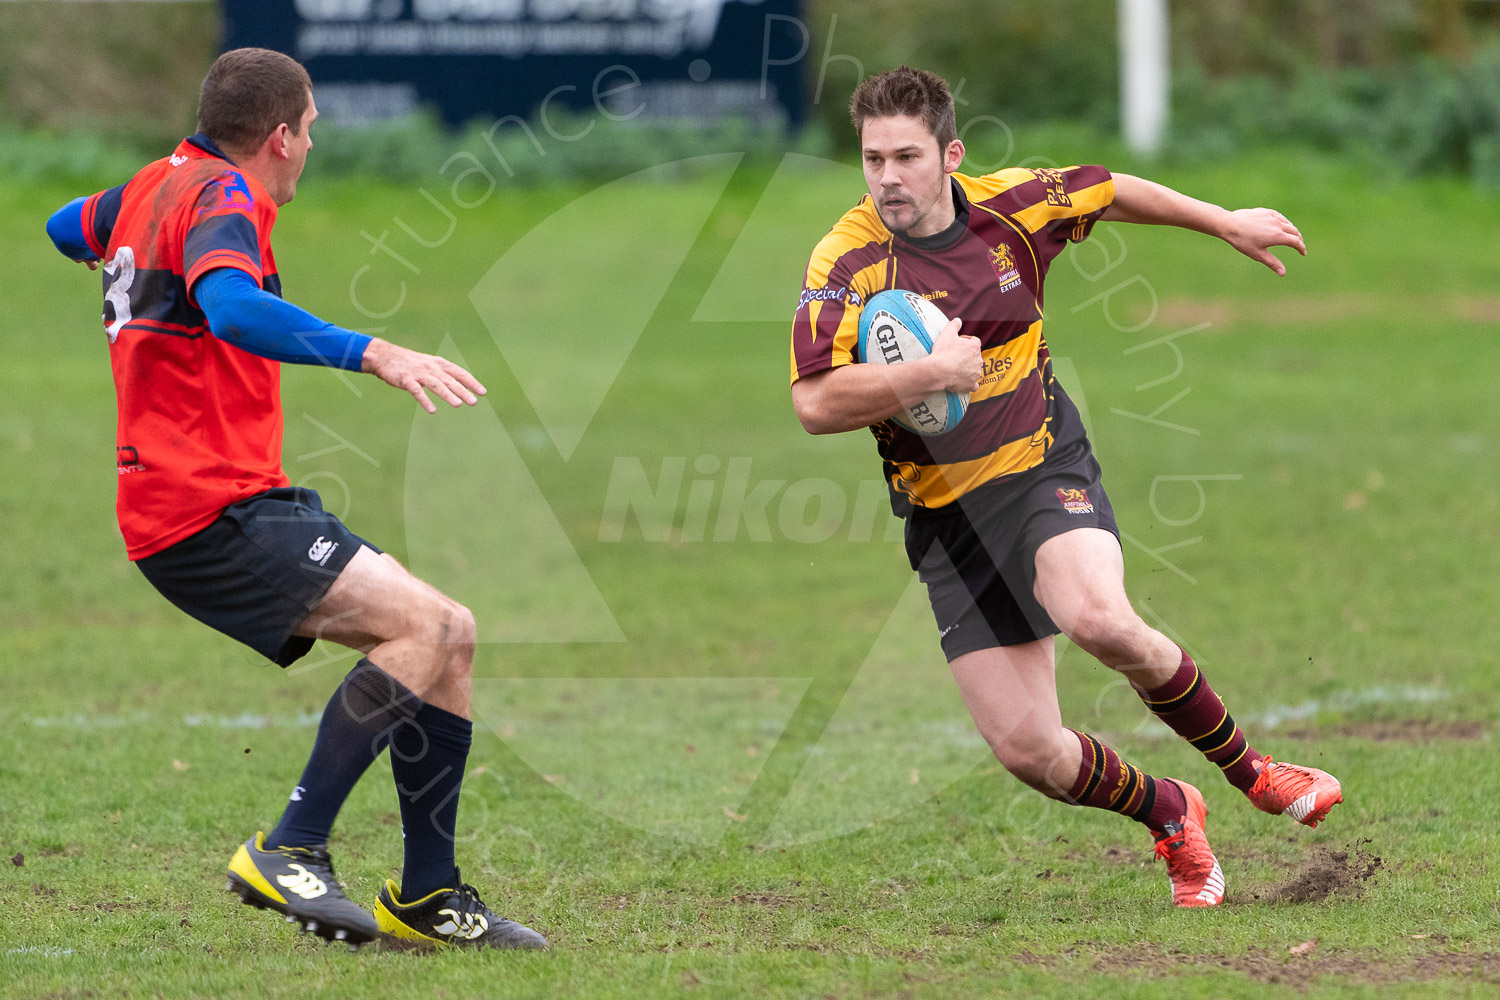 20181027 Amp Extras vs St Neots 2nd XV #2225